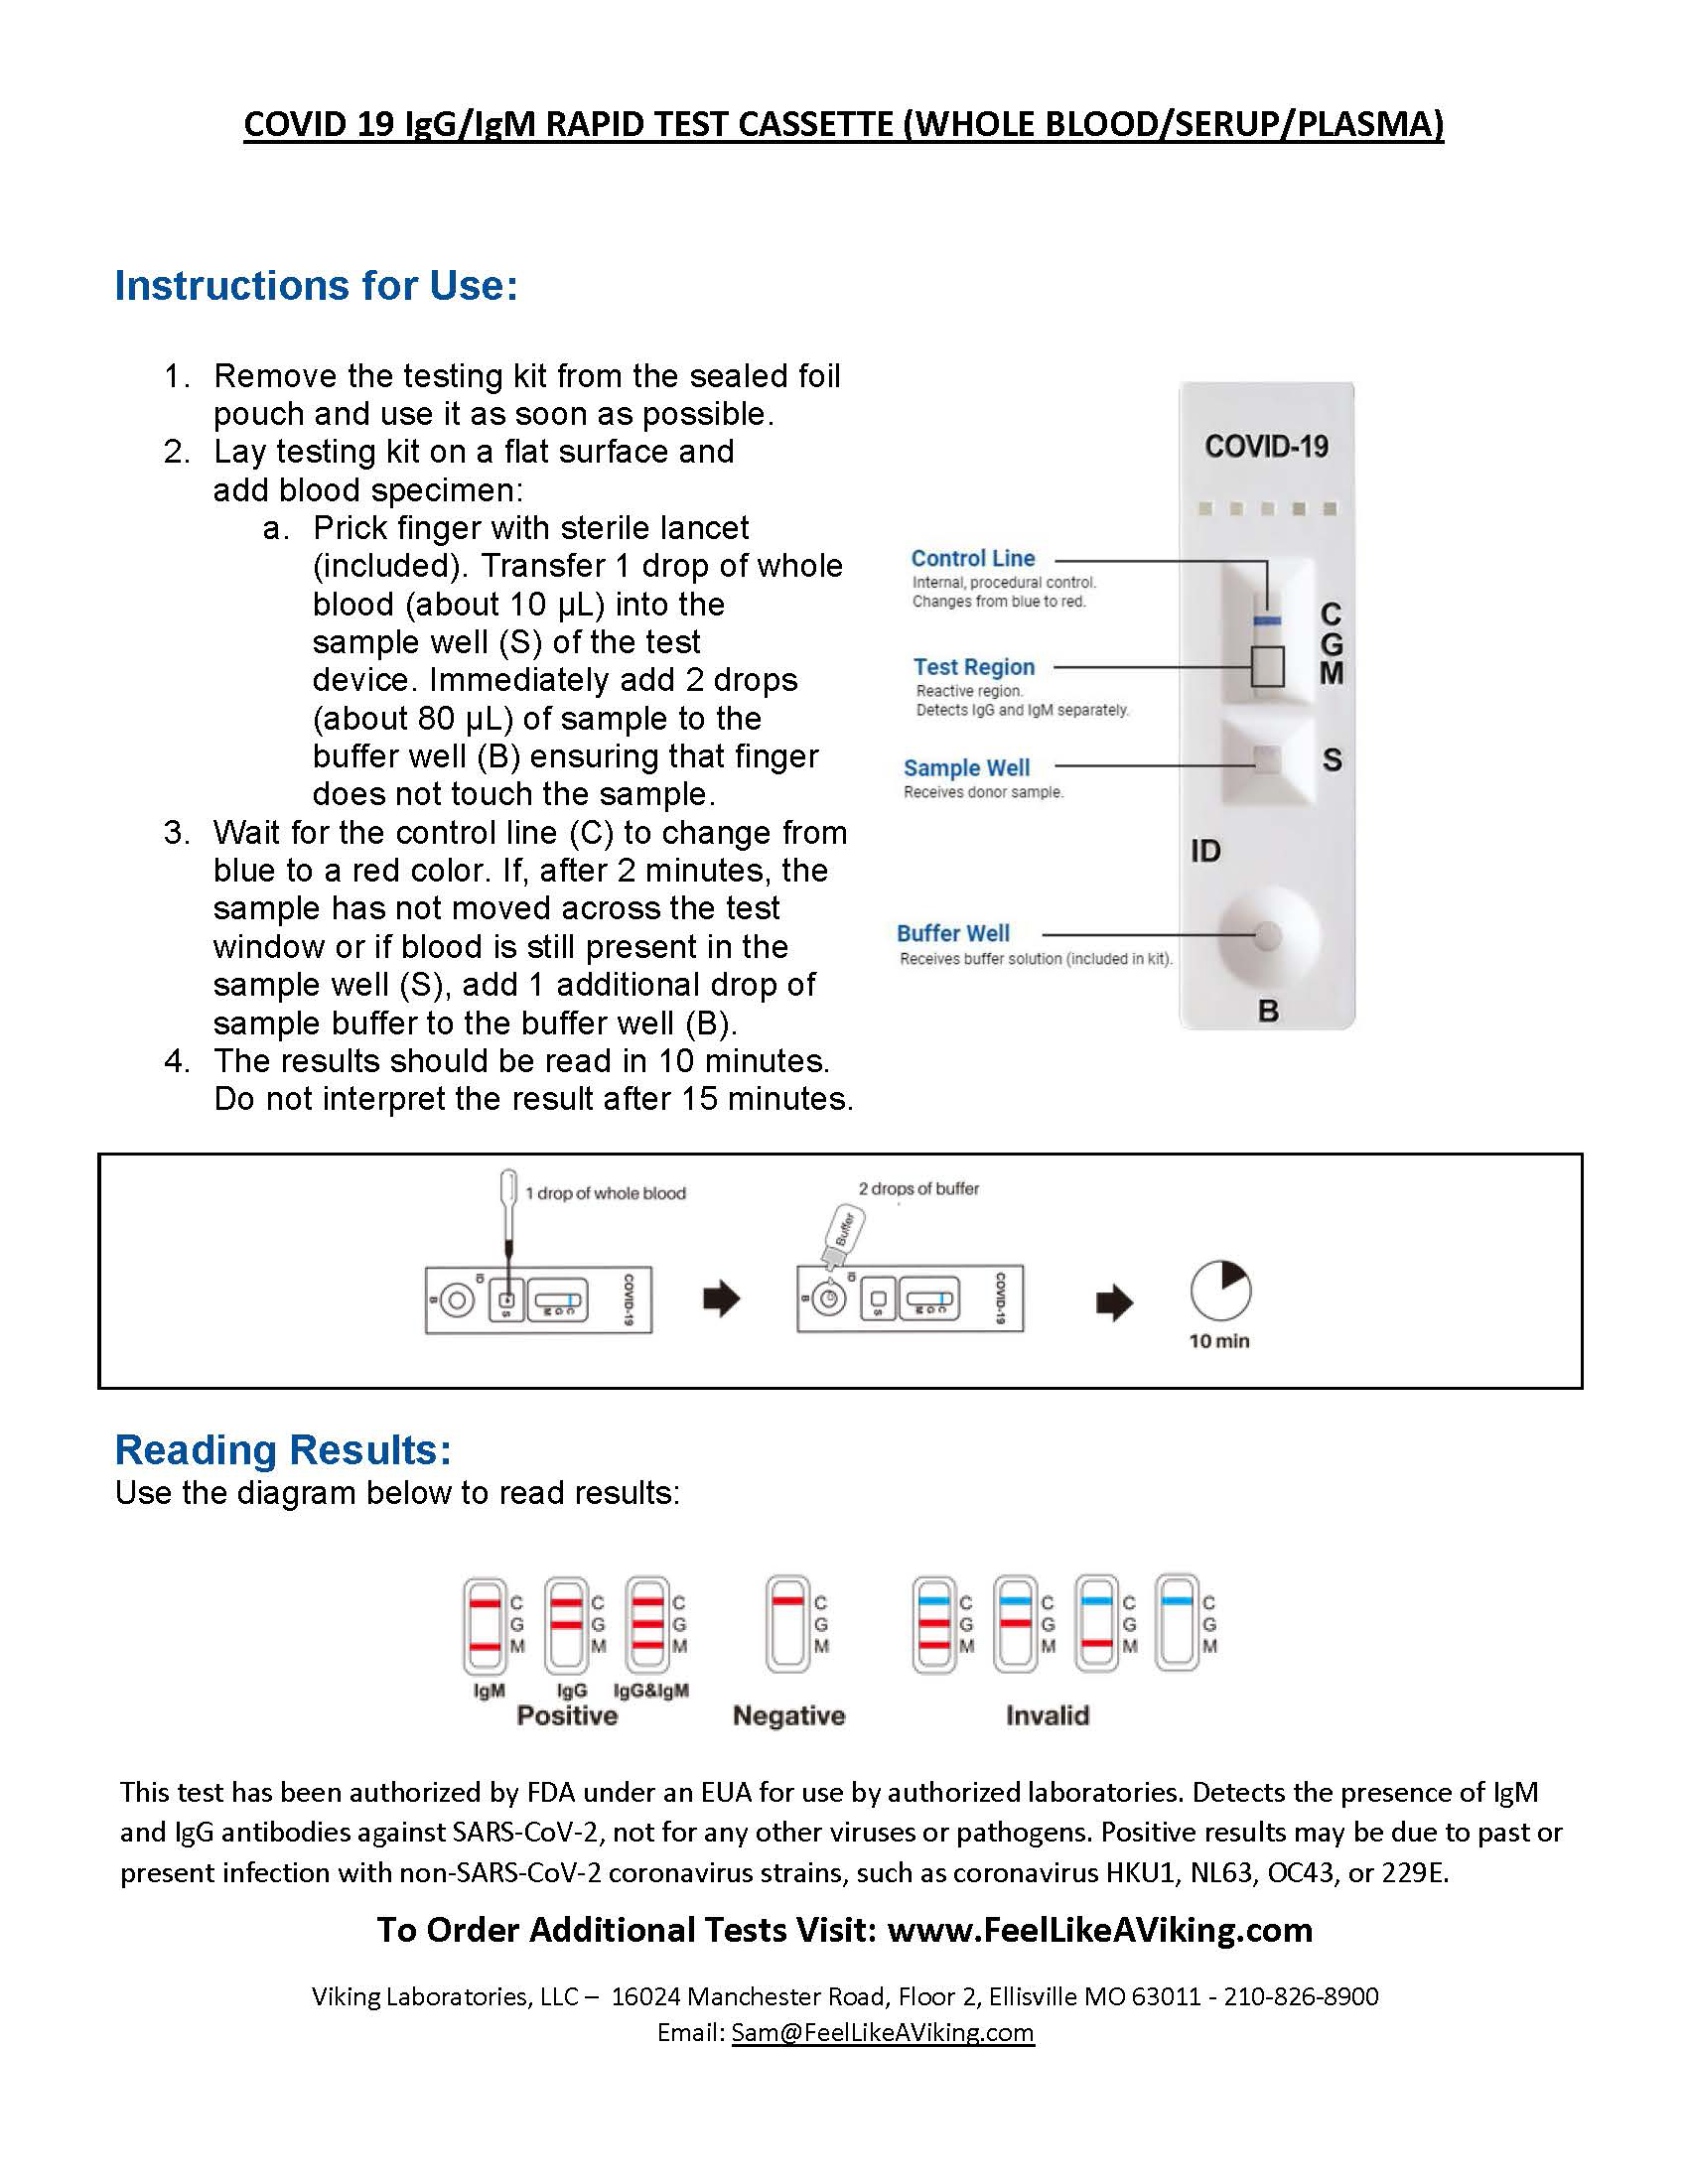 End User Instructions - Rona Testing Kit